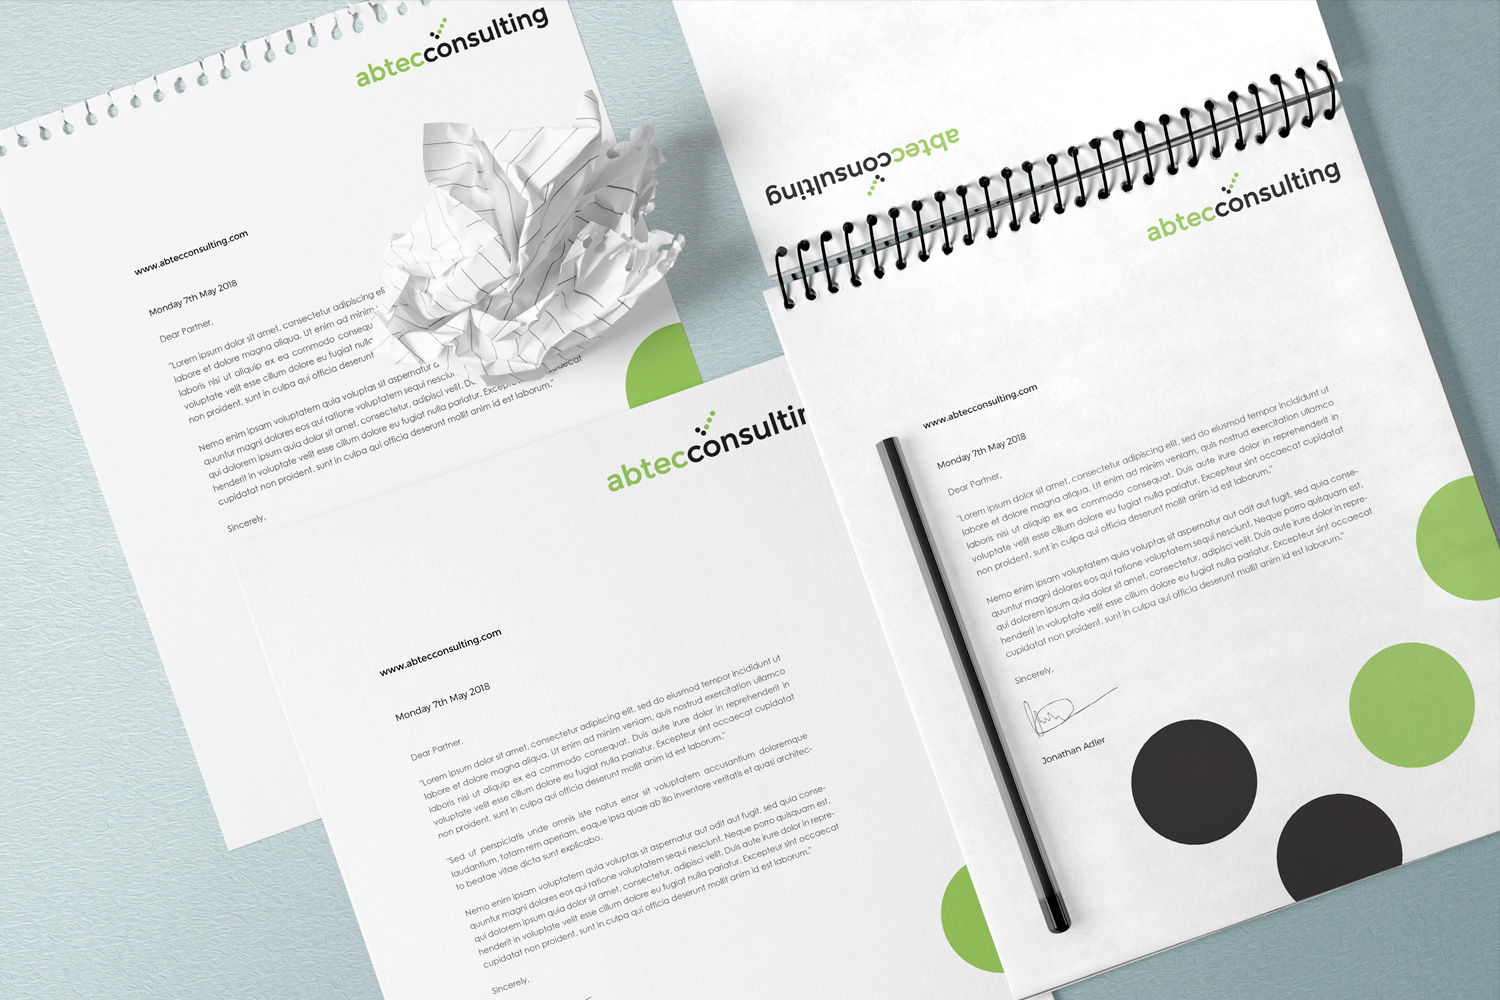 Freelance Graphic Designer and Web Designer, Leicester, UK, London UK, Portugal, Australia, USA, Logo design, Brochures, Flyers, Leaflets, Infographics, Branding, Powerpoint Presentations, websites, branding & identity, wordpress